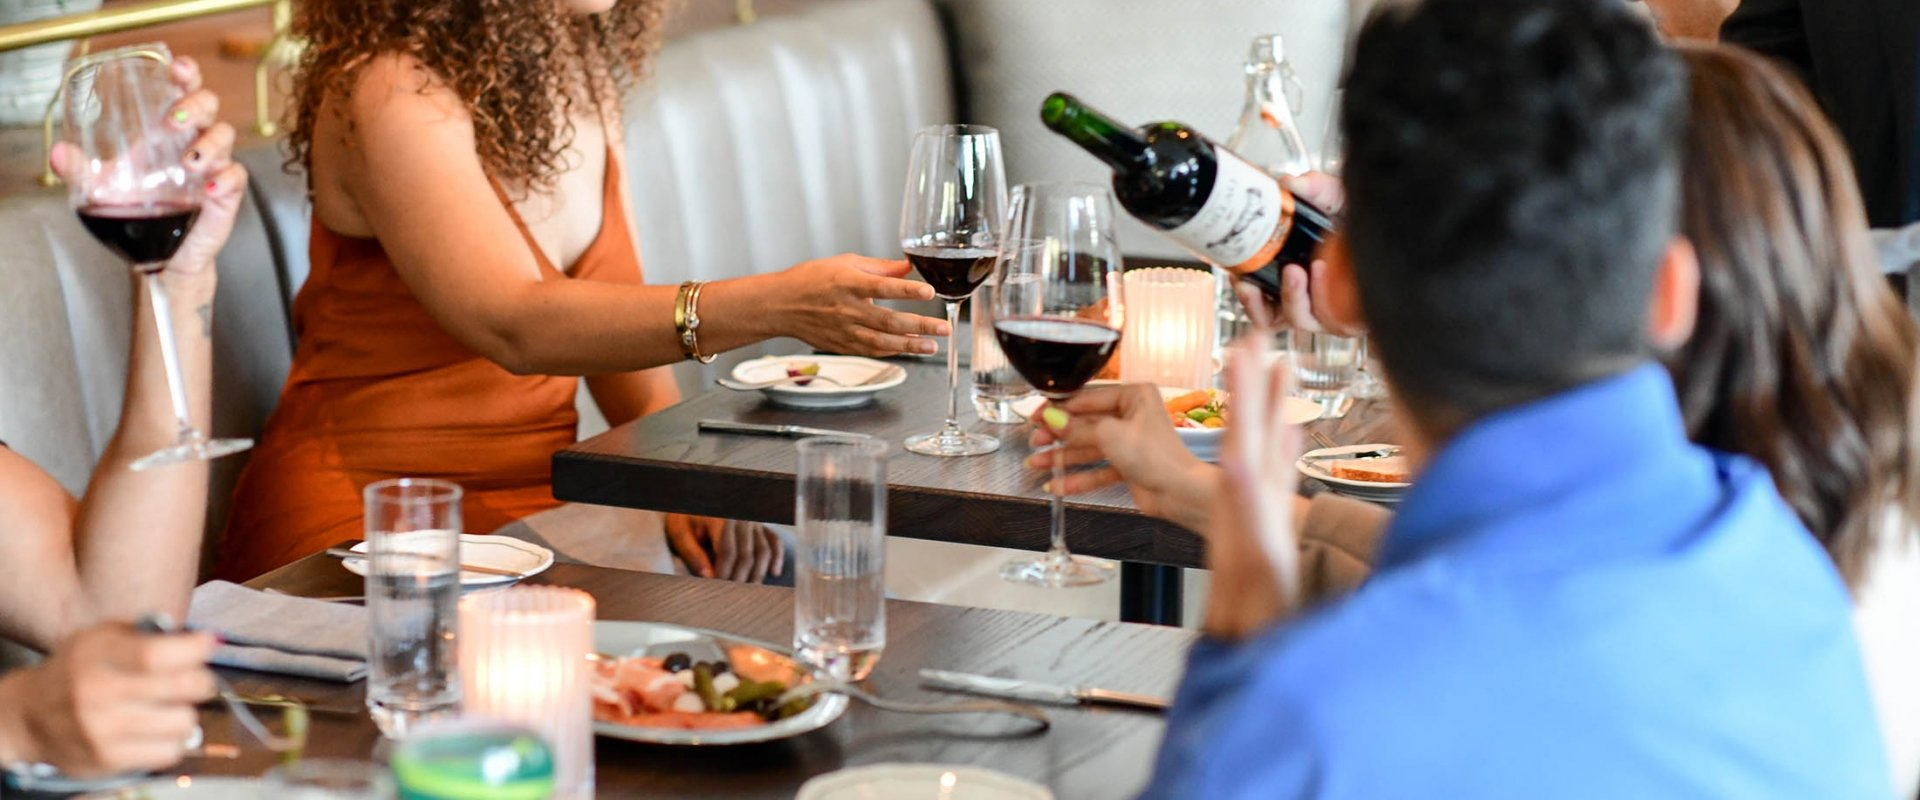 A group enjoy wine and food at the Fairmont Century Plaza.